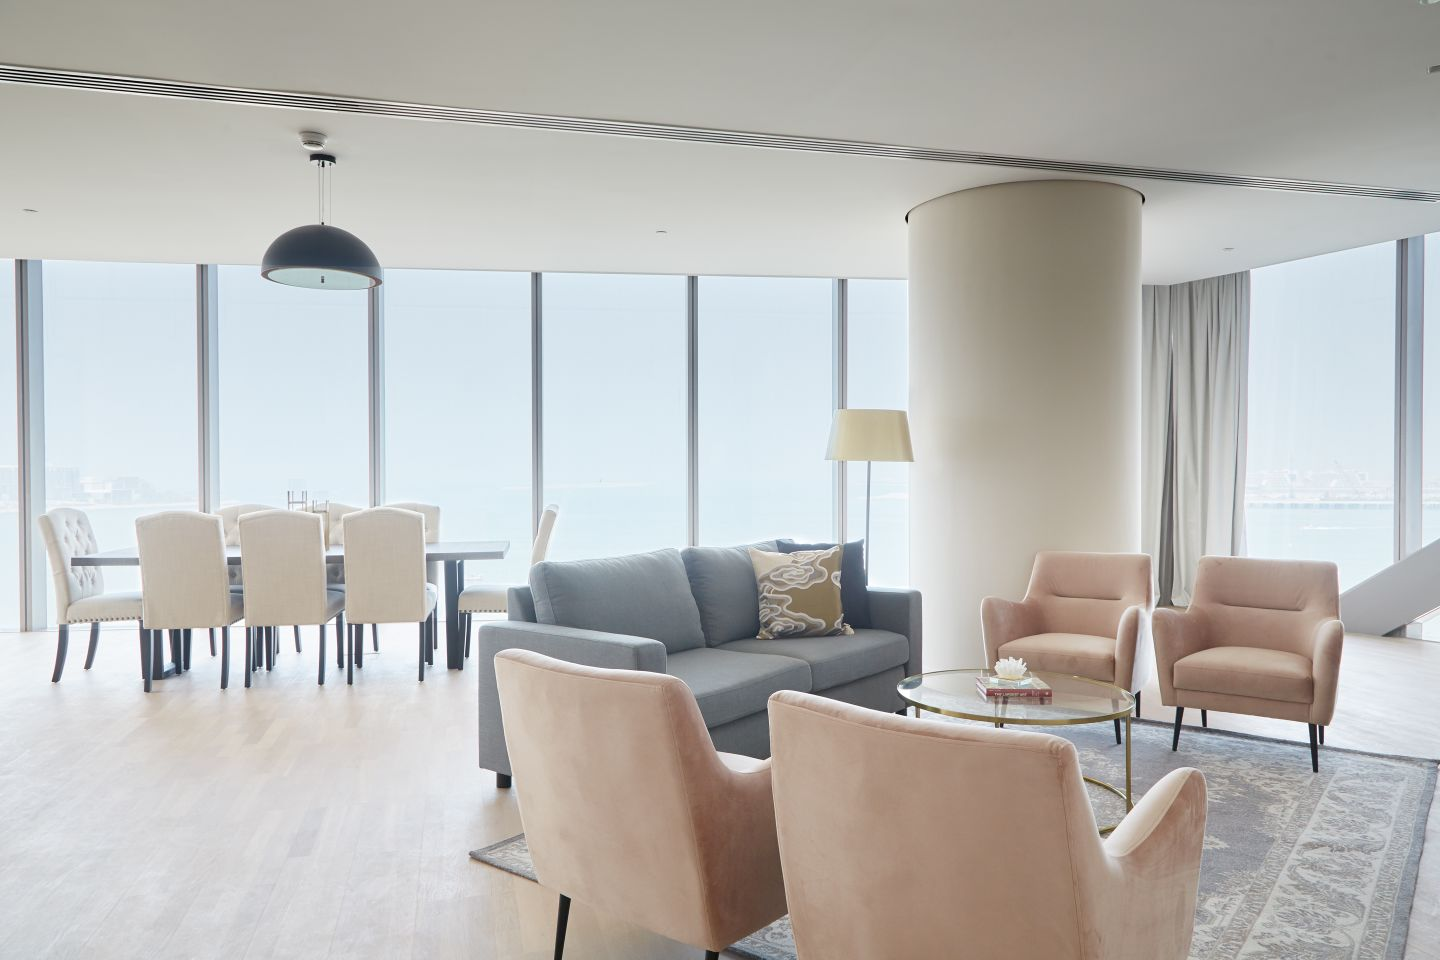 Living room & dining room of a serviced apartment in Dubai with floor to ceiling windows.